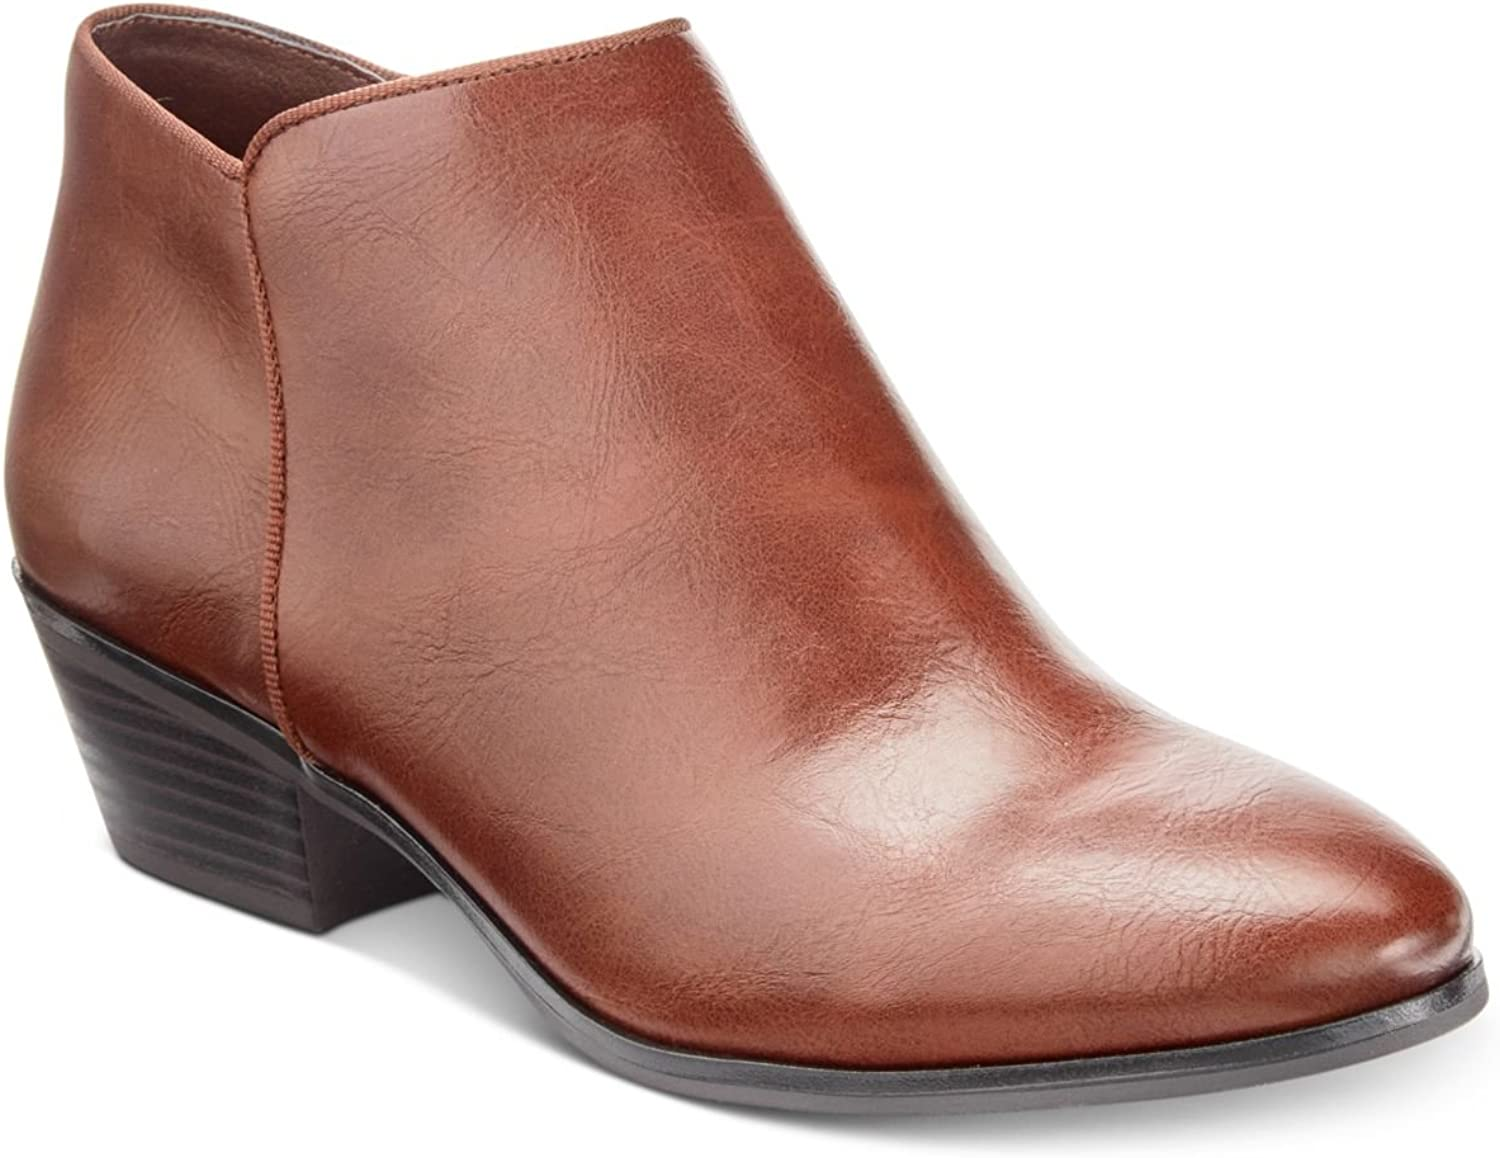 Style & Co. Womens Wileyyf Faux Suede Ankle Booties